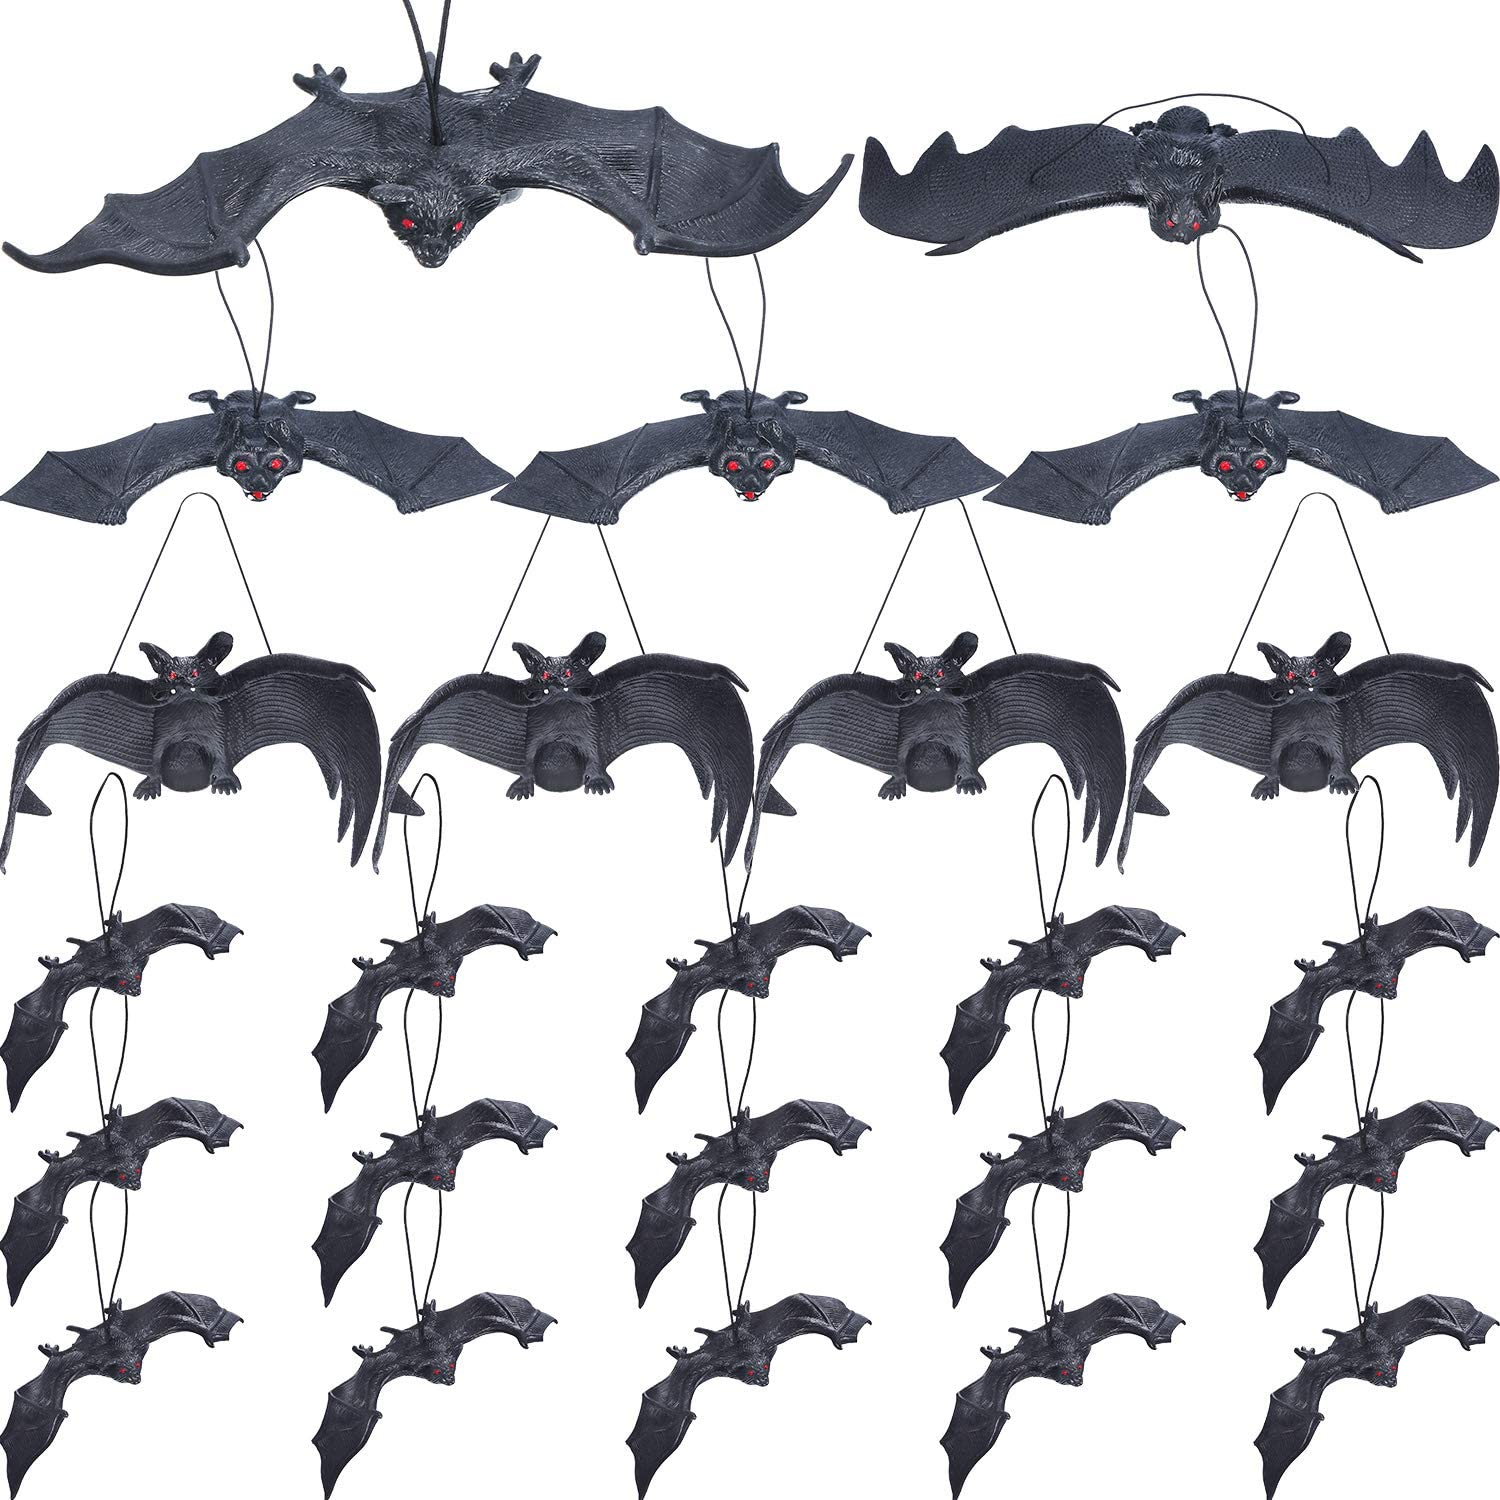 4 Pieces Scary Plastic Fake Bats Halloween Haunted House Party Trick Props